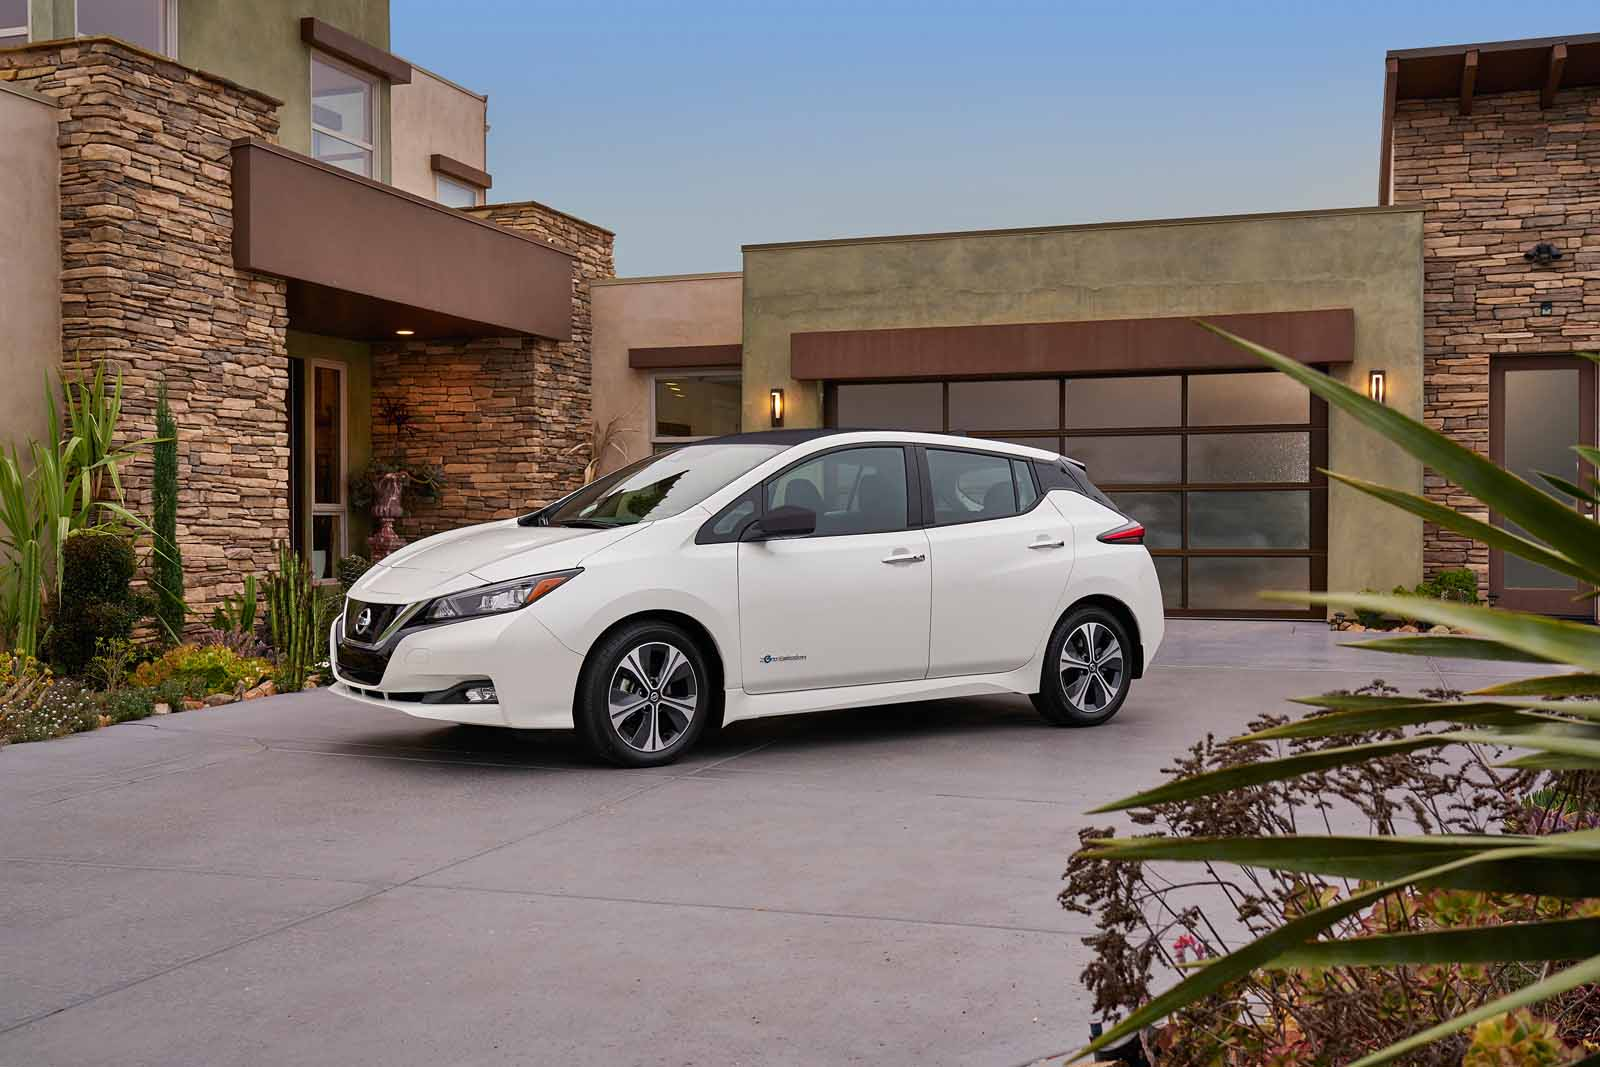 Nissan unveils new Leaf EV with improved range